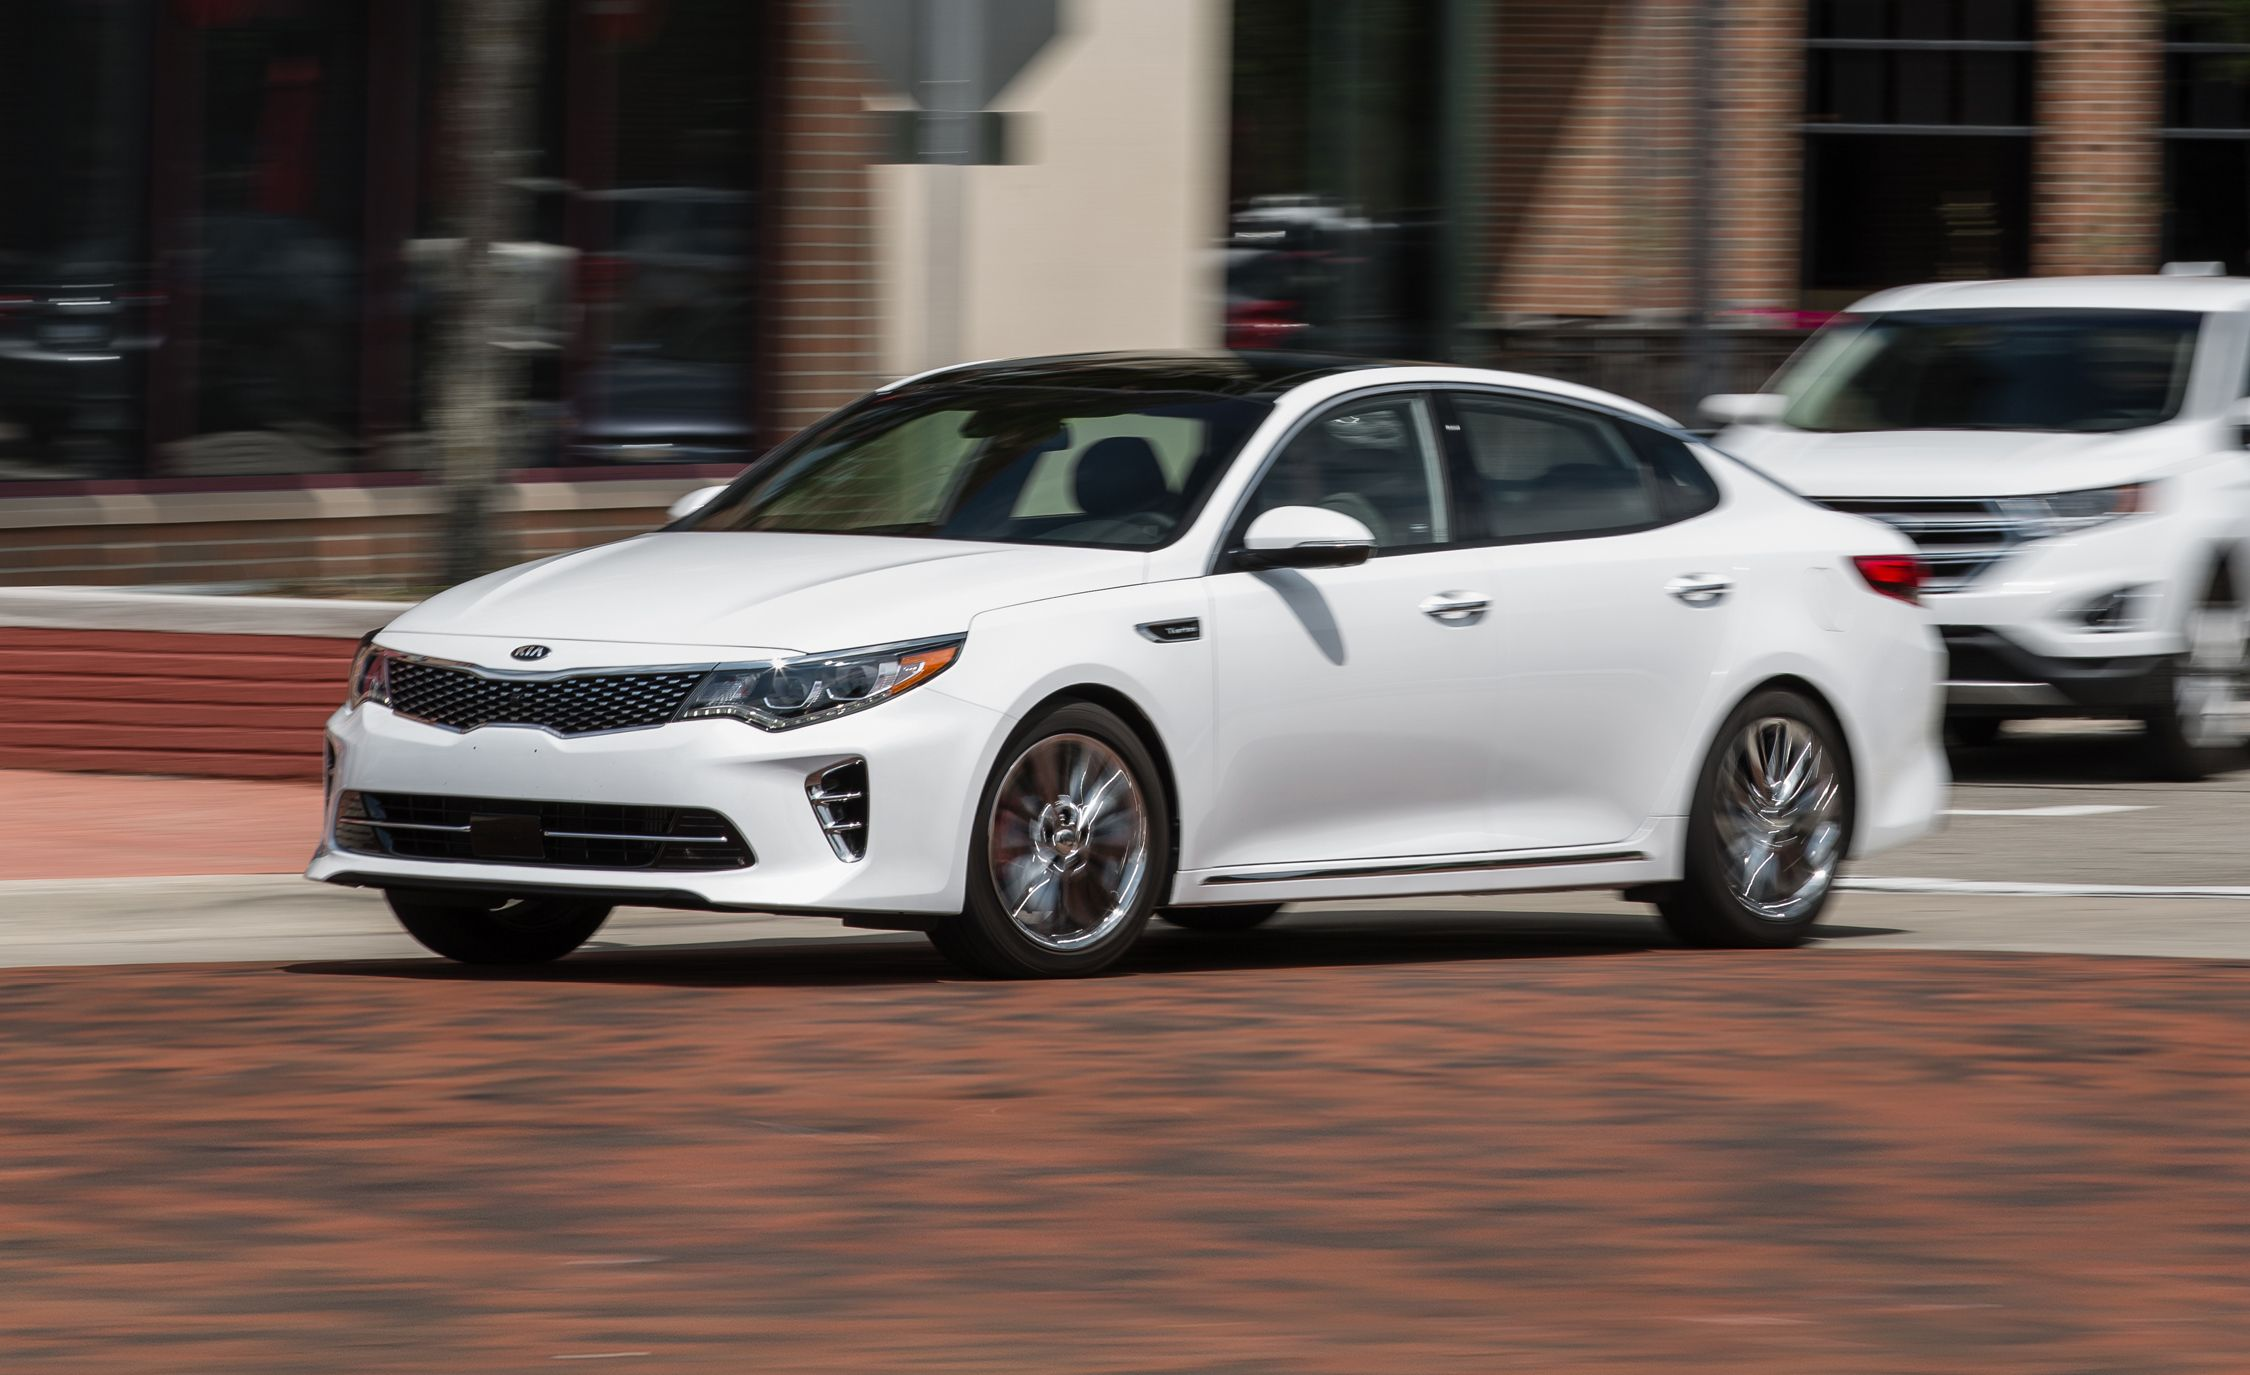 2017 Kia Optima | Safety and Driver Assistance Review ...